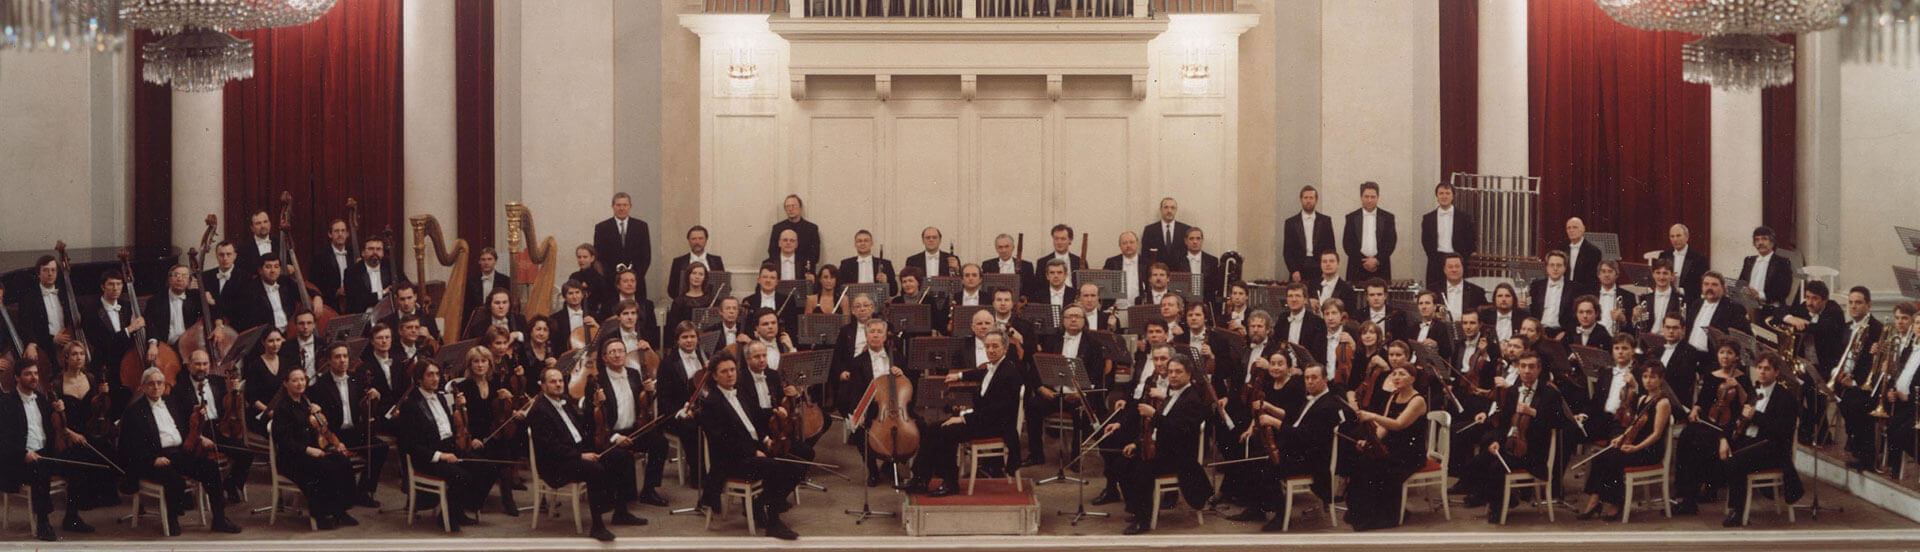 St. Petersburg Philharmonic Orchestra on stage